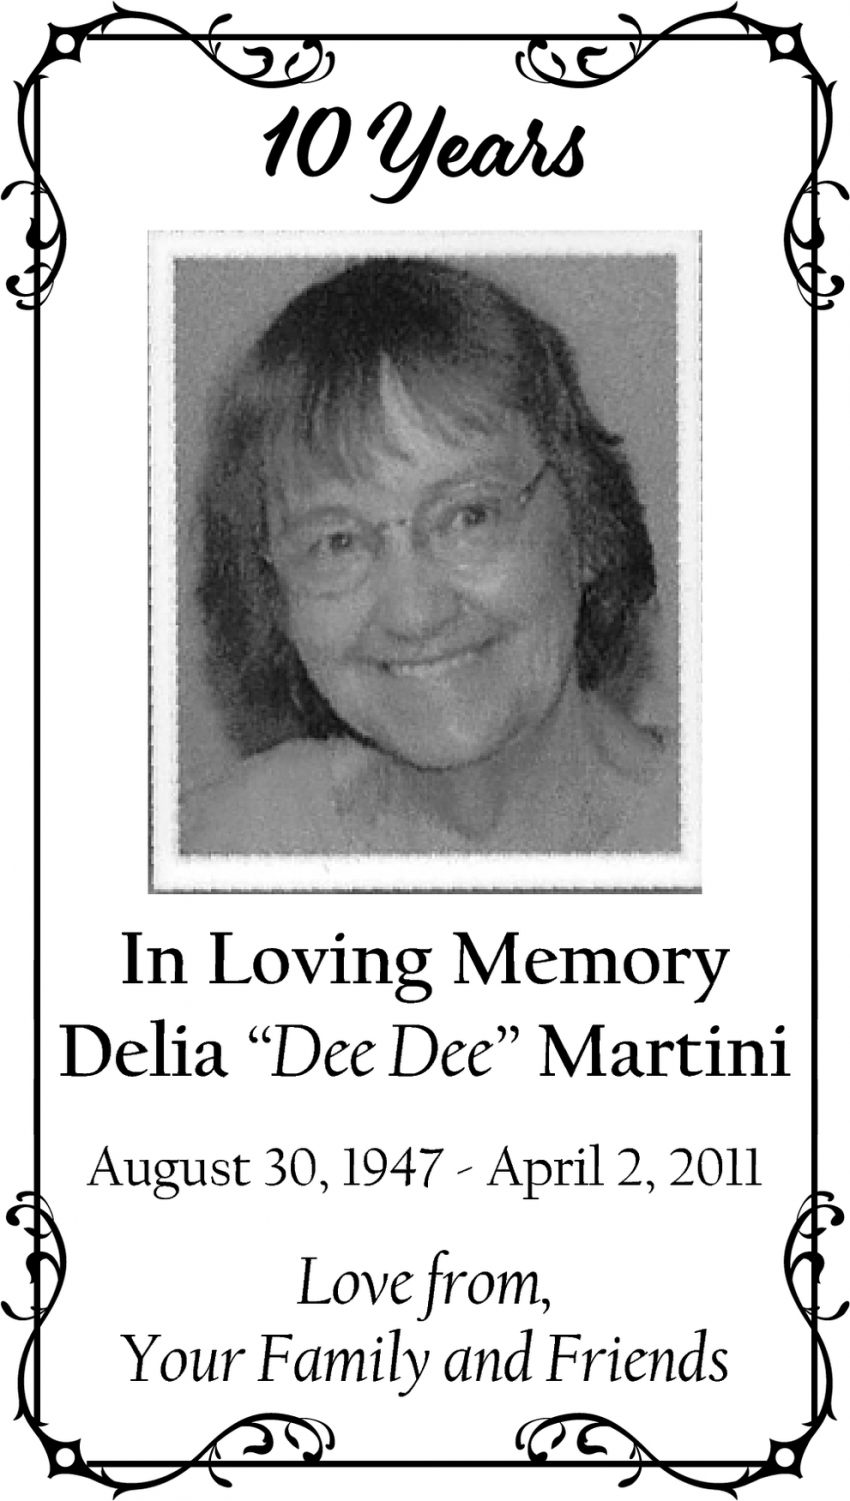 In Loving Memory Of Delia